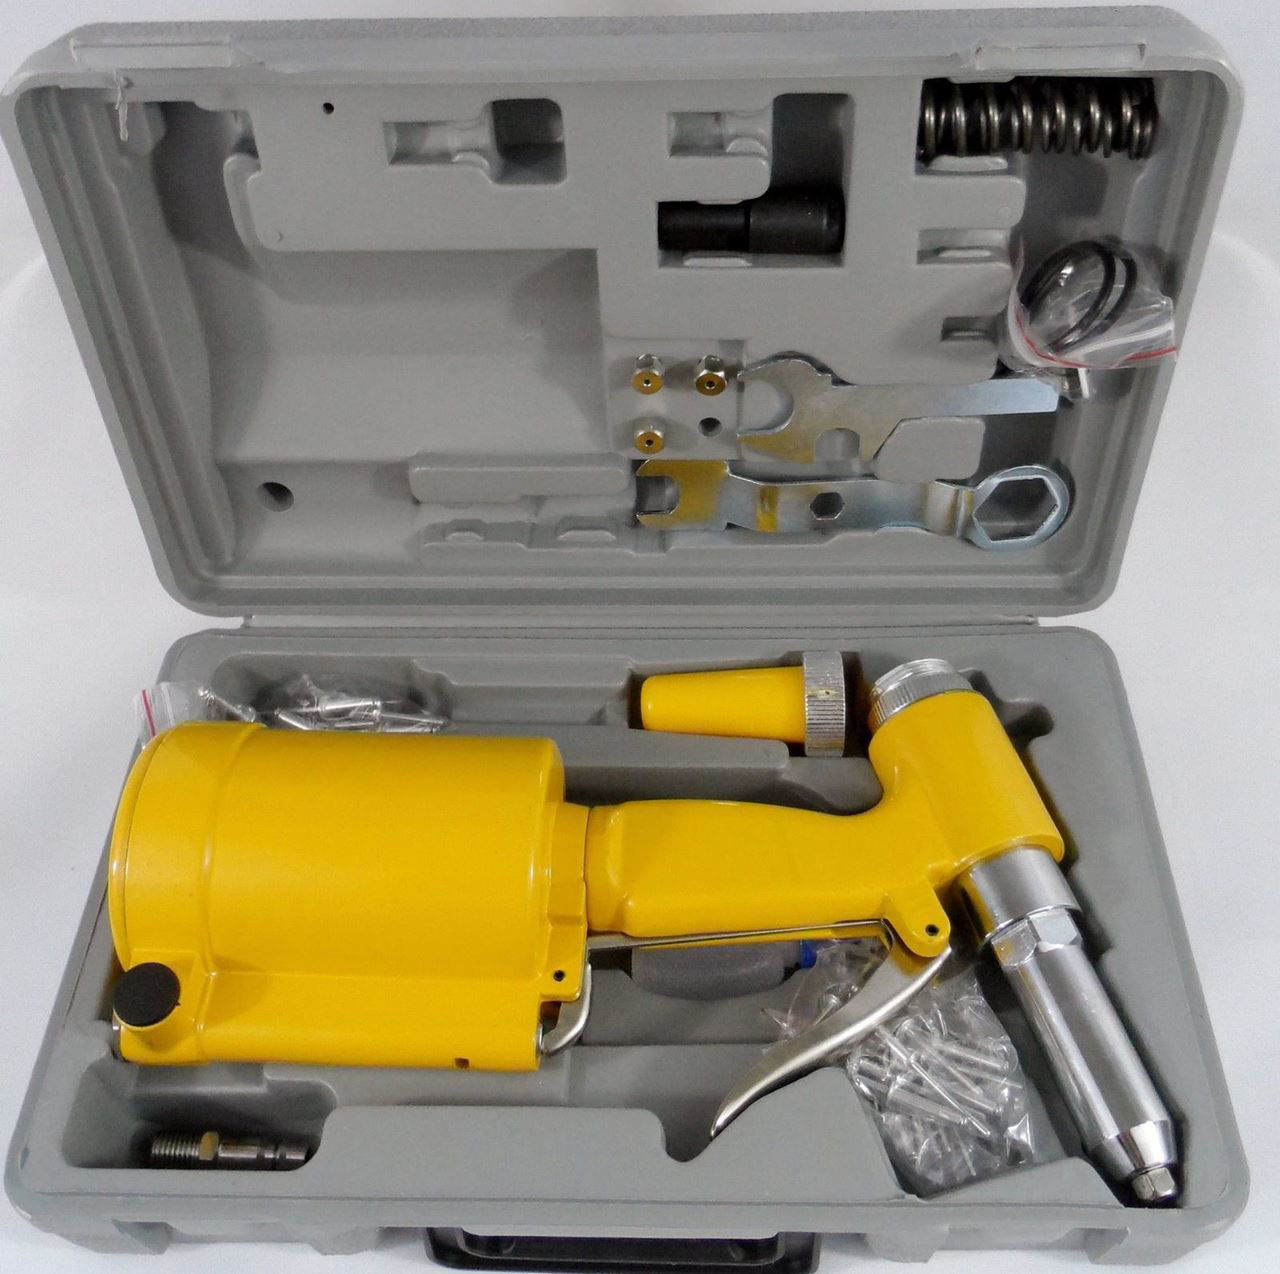 Picture of Pneumatic Air Hydraulic Pop Rivet Gun Riveter Riveting Tool with Case